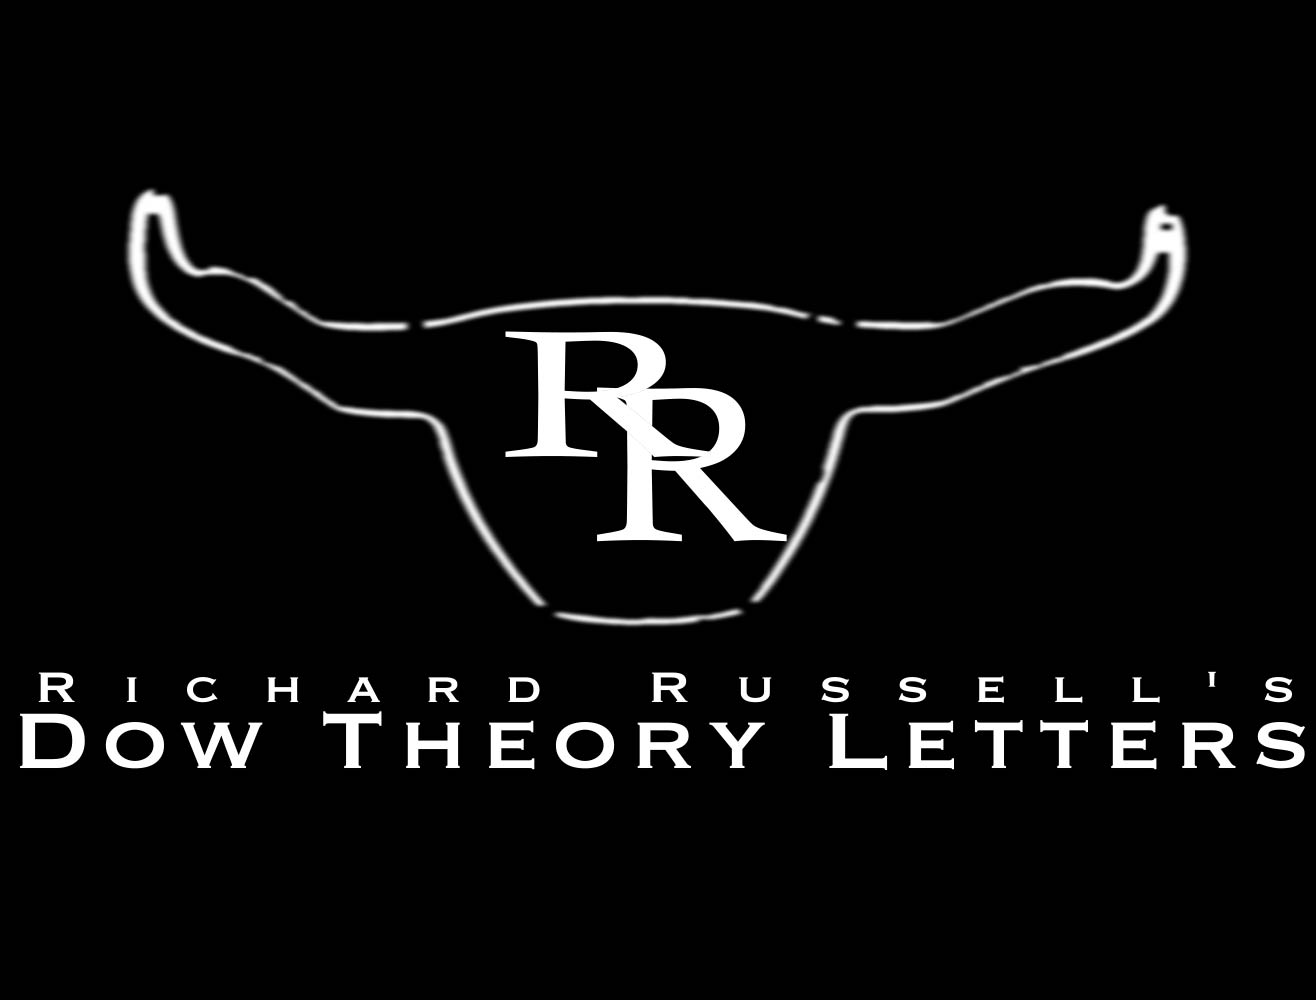 dow theory letters masculine conservative financial logo design for richard 21409 | 141539 2375648 227249 image